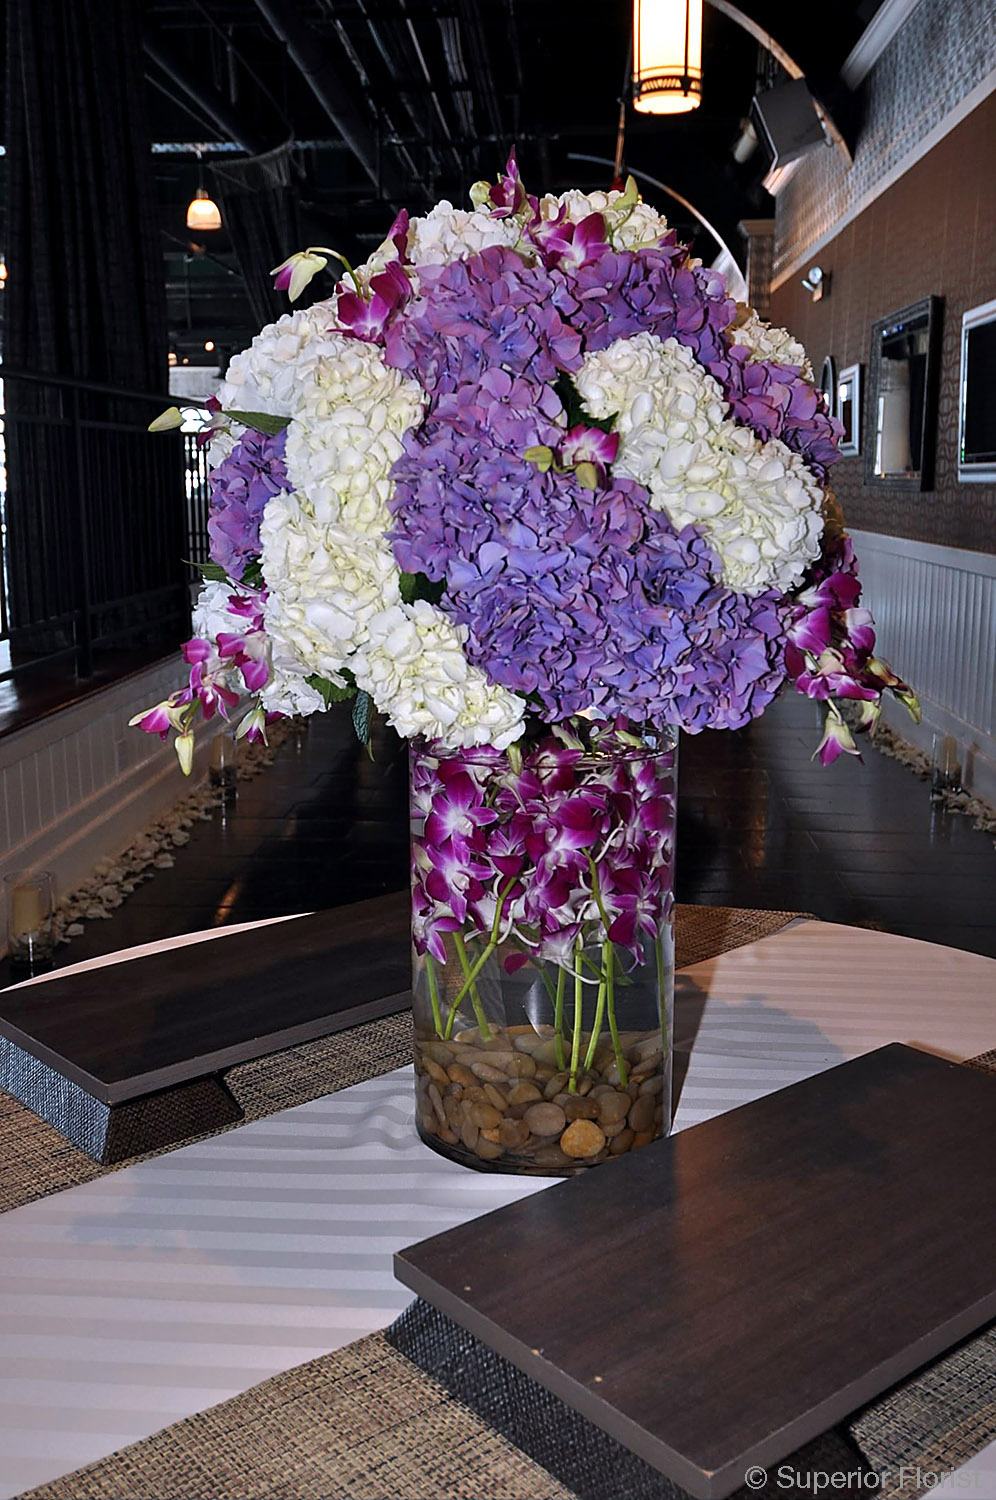 Superior Florist – Weddings – Escort Tables: Large bouquet of purple and white with submerged variegated Dendrobiums in a clear, glass cylinder vase with river rocks.